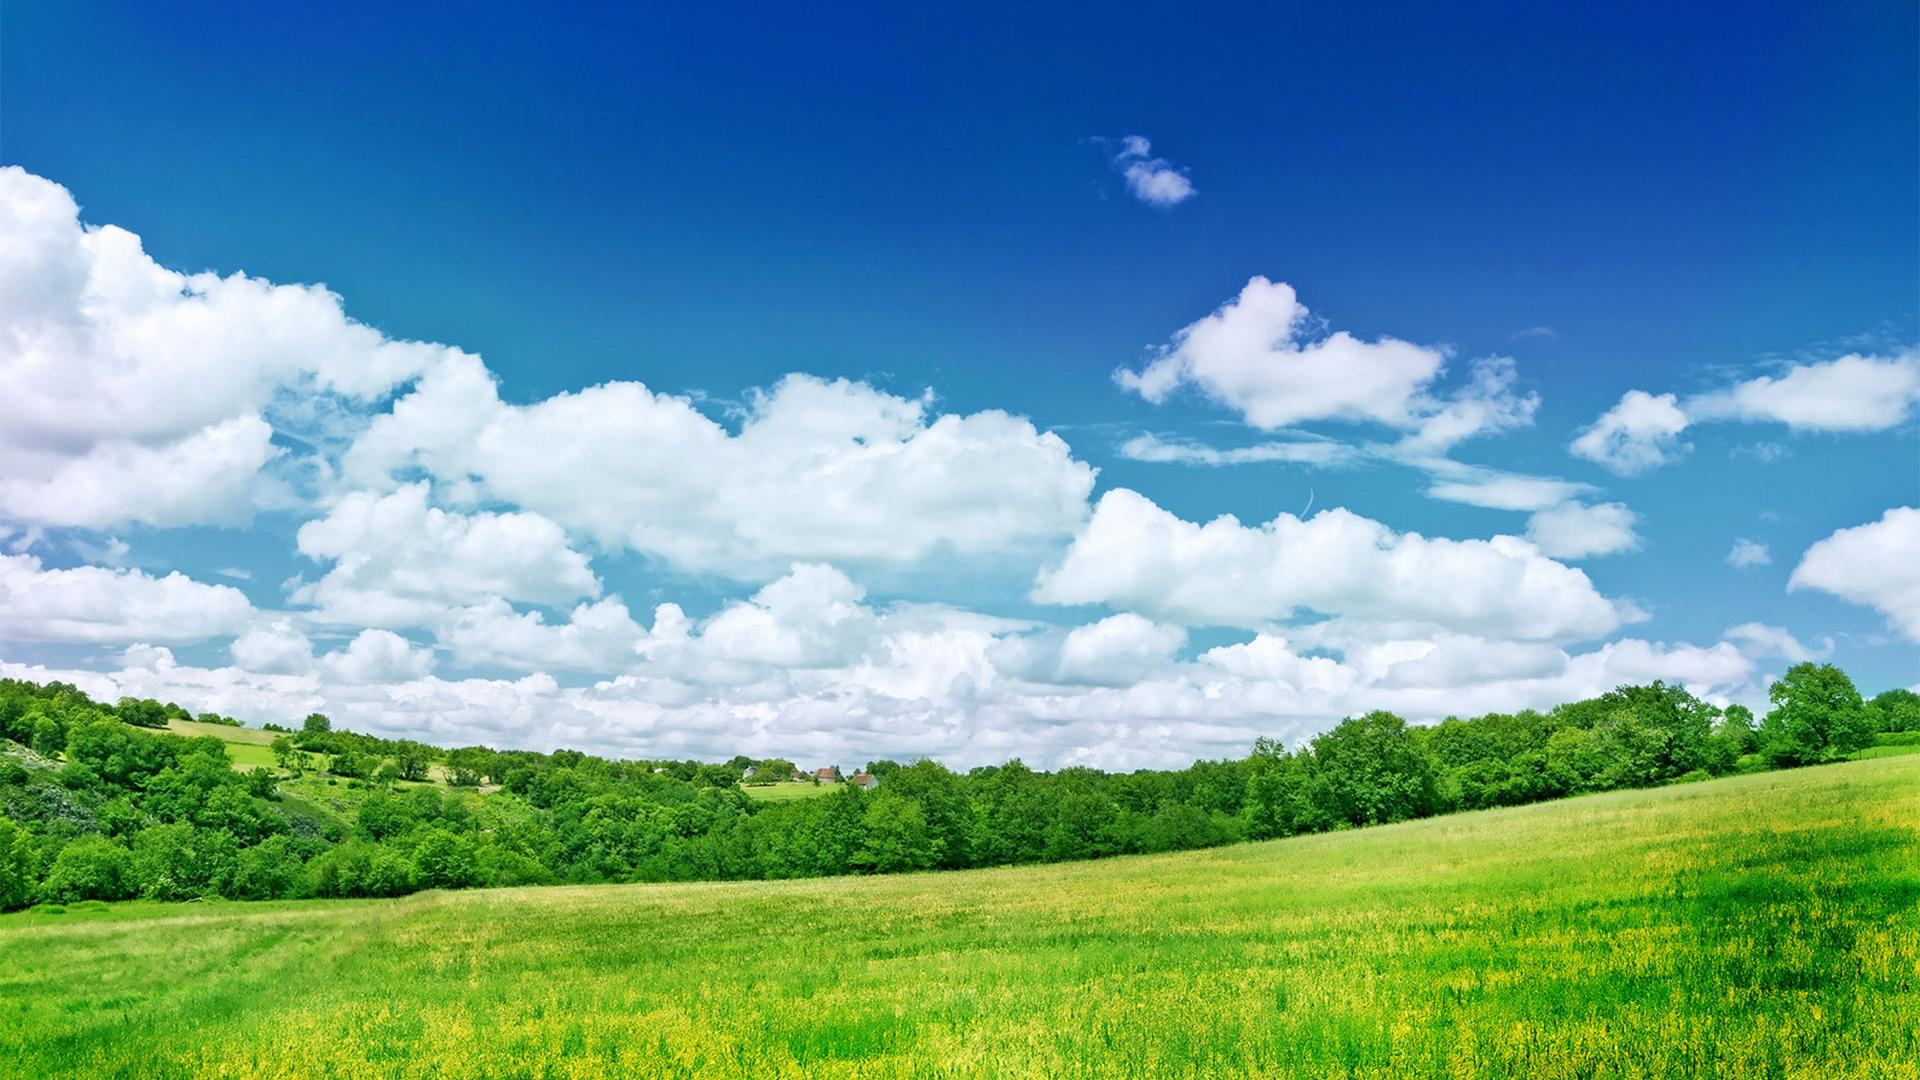 ... Grassland Scenery Backgrounds Widescreen and HD background Wallpaper